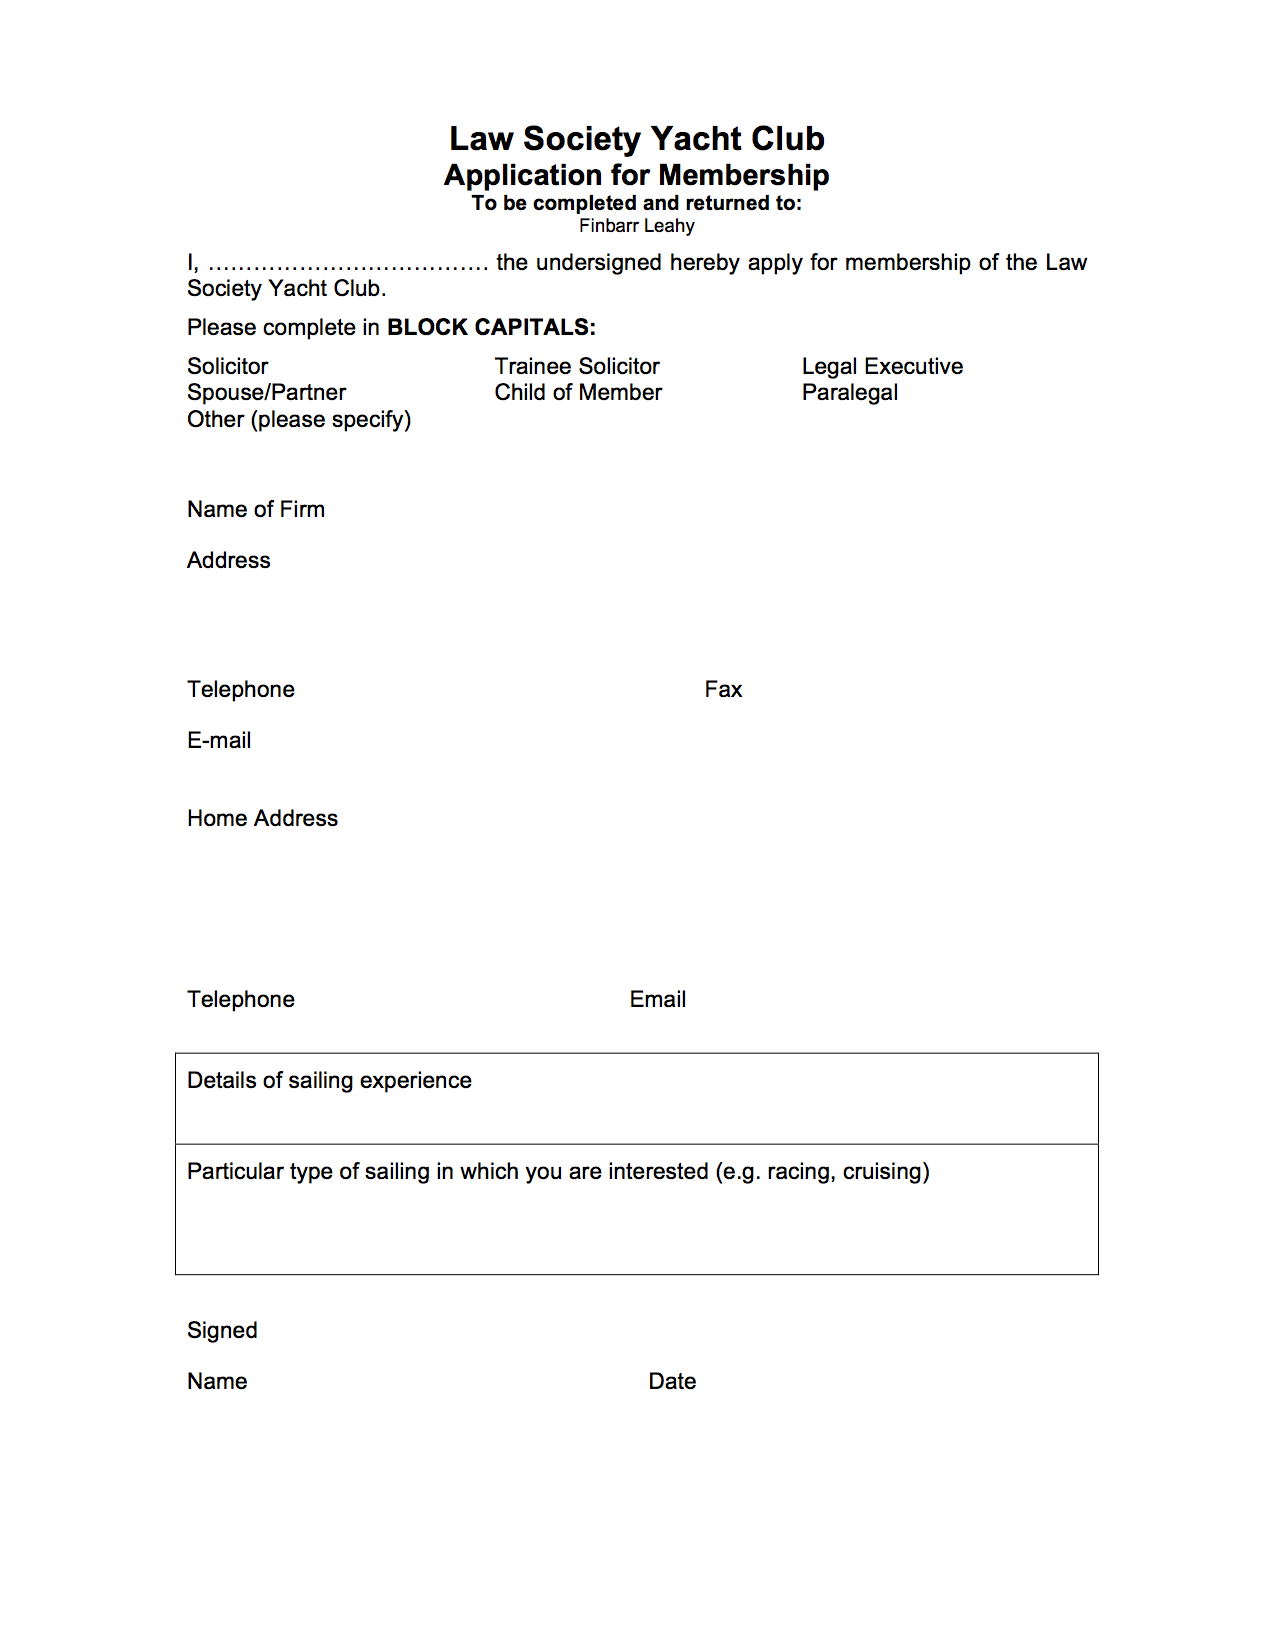 070306_Law_Society_Yacht_Club_Application_for_Membership.png